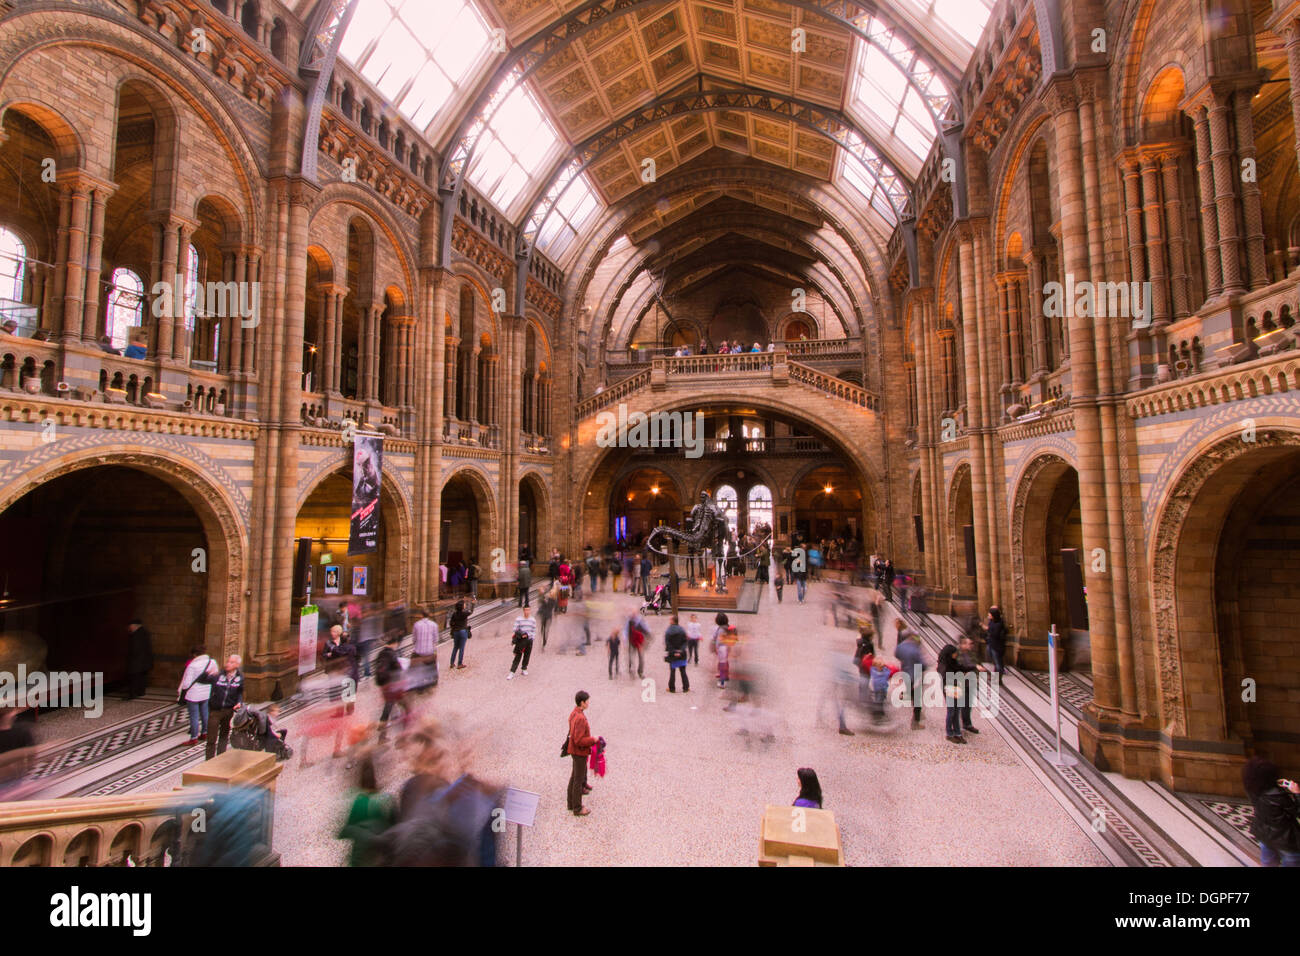 Main Hall of the Natural History Museum London - Stock Image